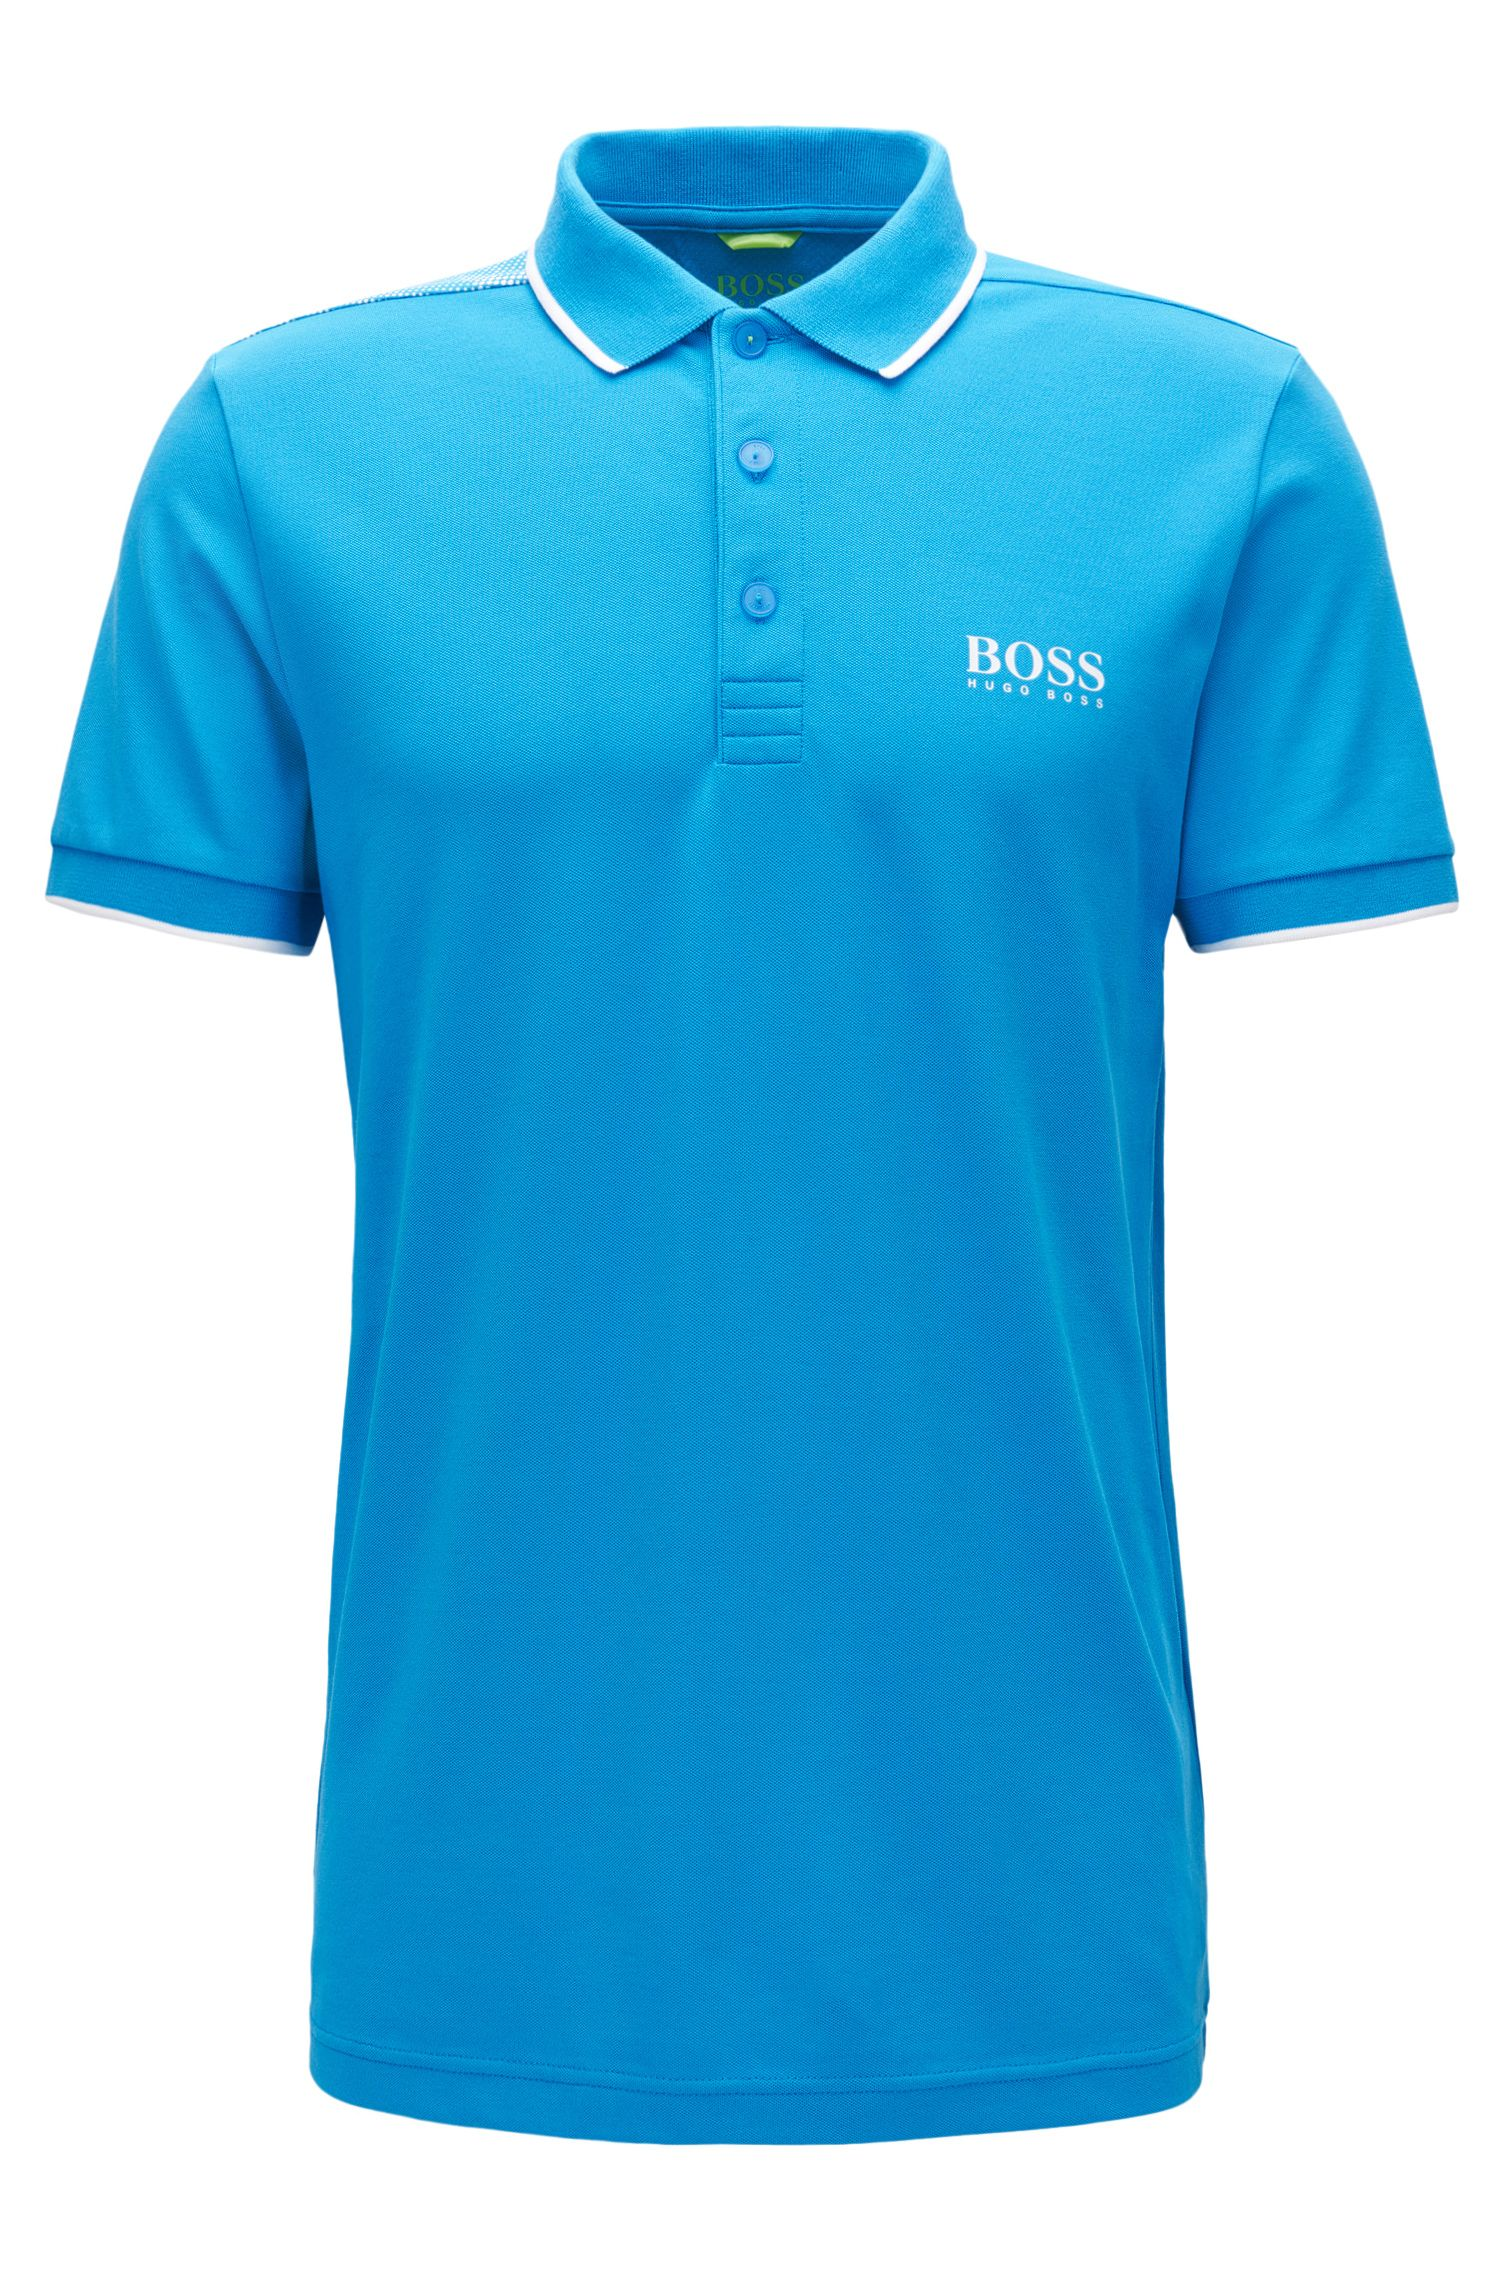 Tipped Cotton Blend  Polo Shirt, Slim Fit | Paul Pro